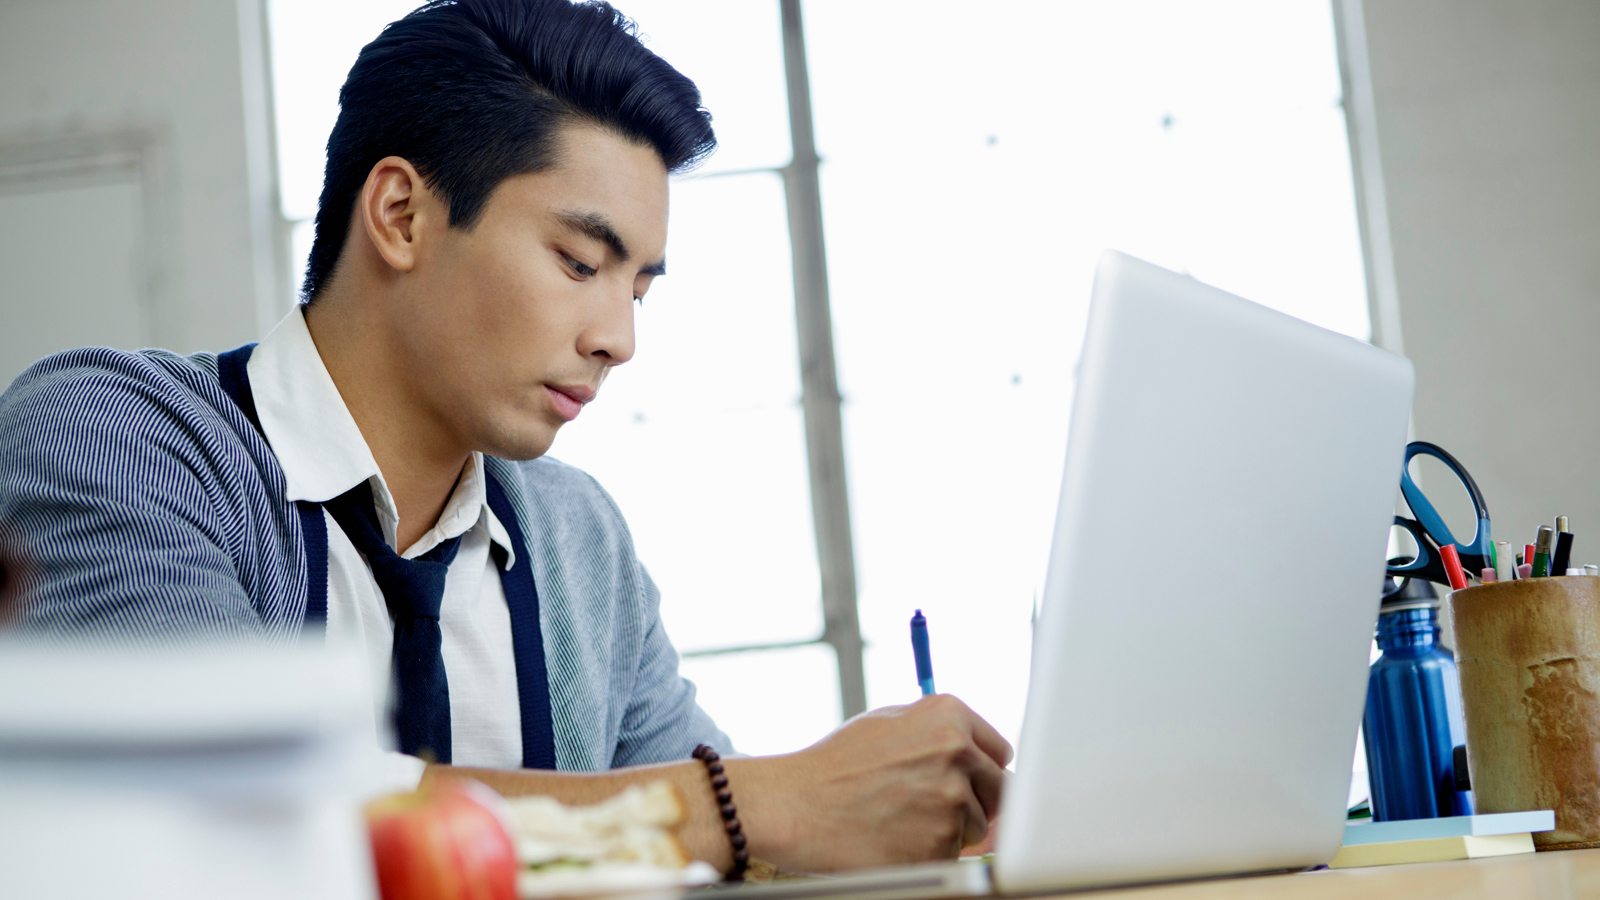 Young man sitting at his desk and working in front of his laptop.